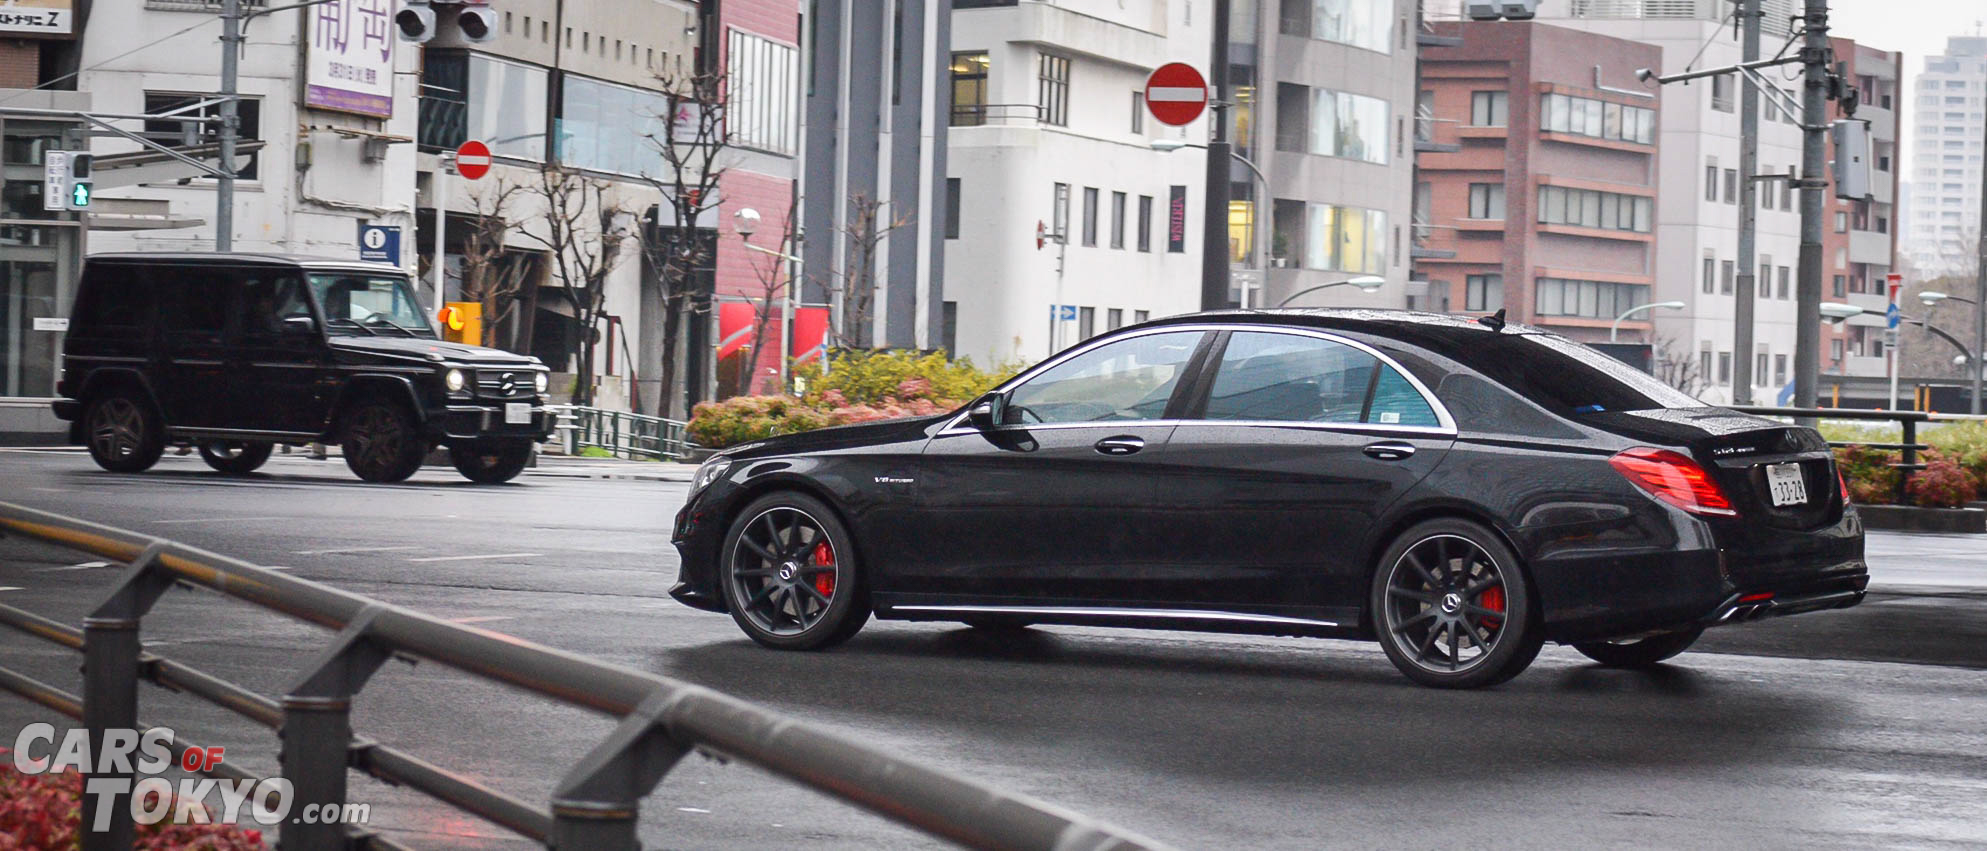 cars-of-tokyo-luxury-mercedes-benz-s63-amg-g63